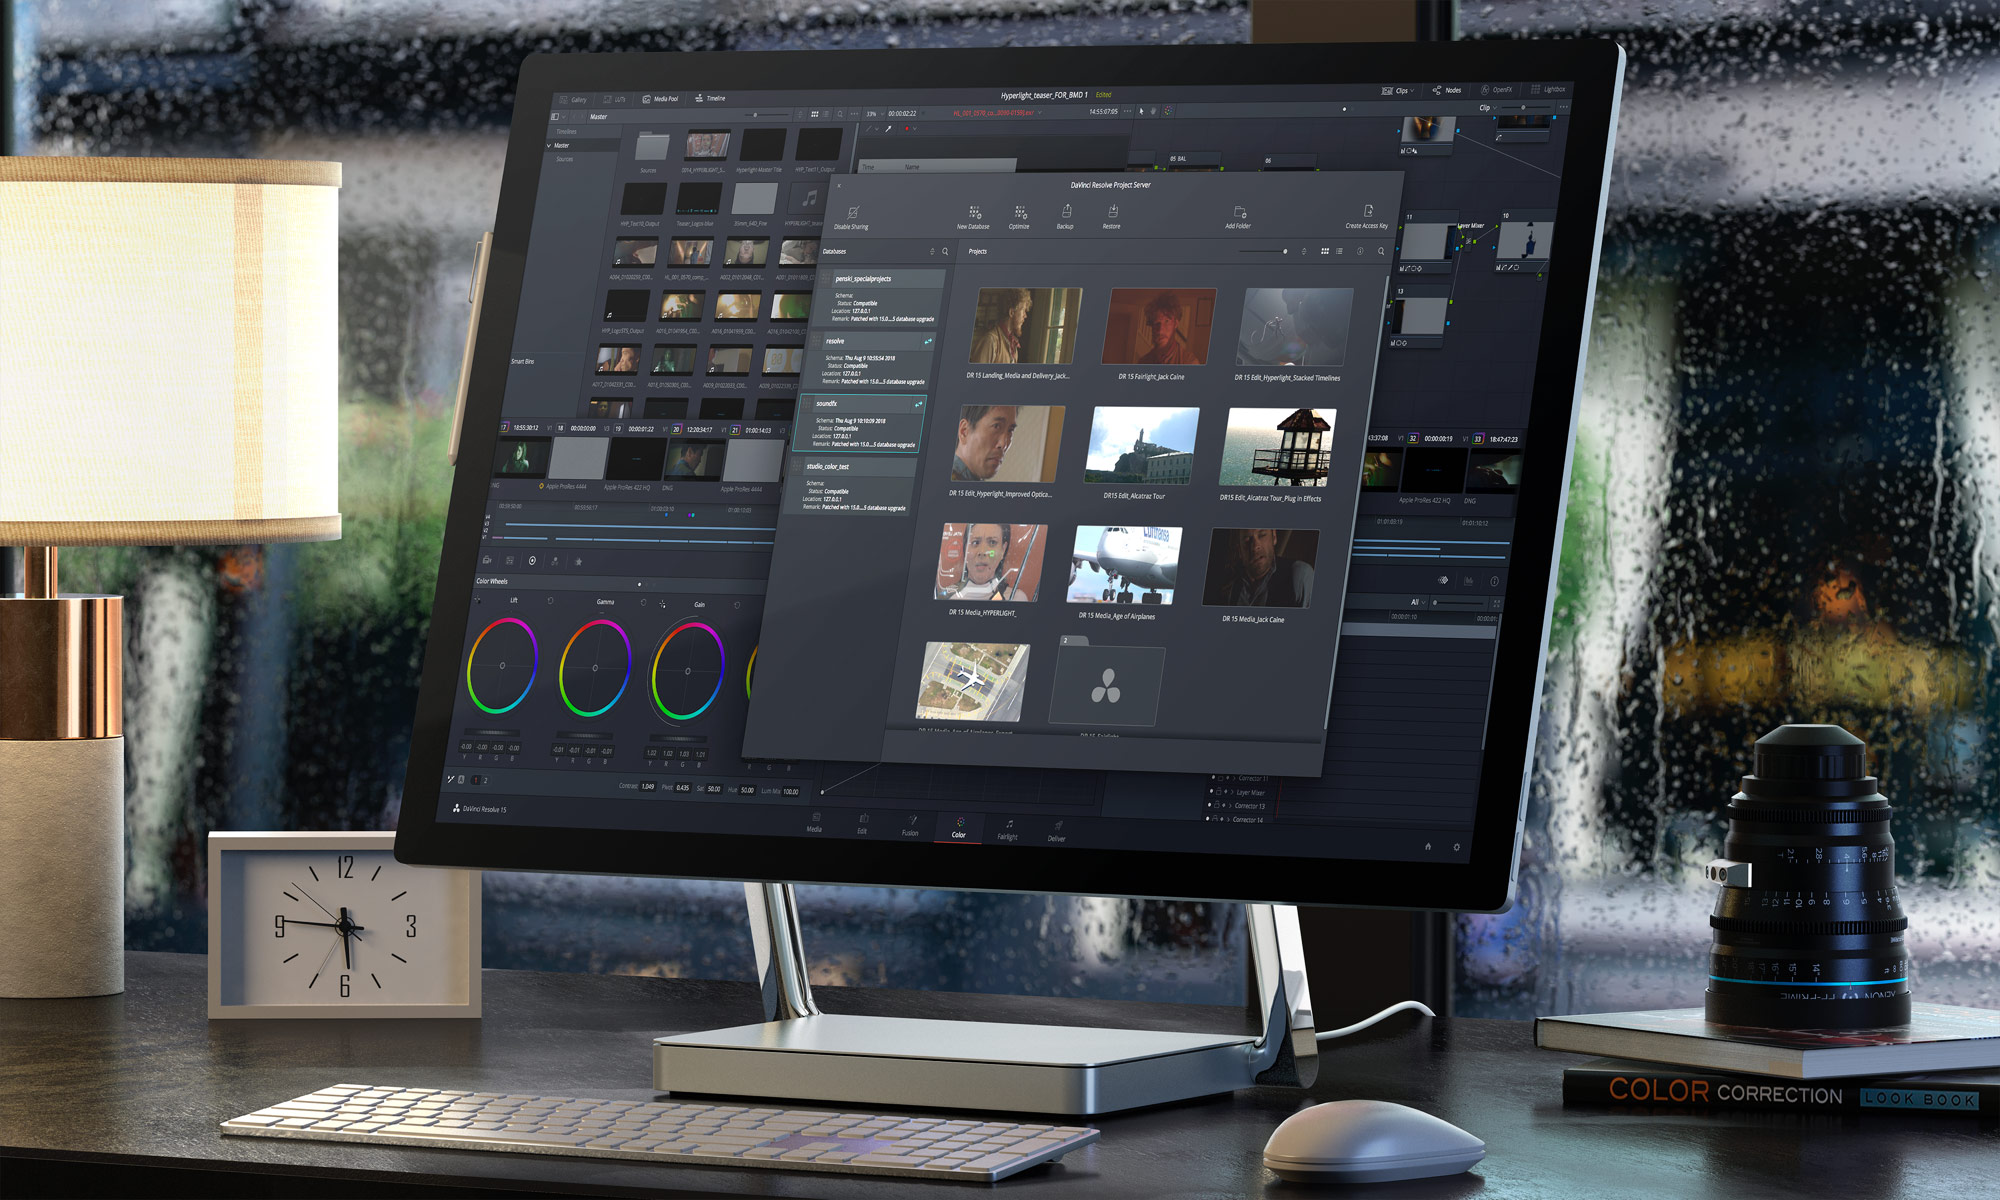 https://images.blackmagicdesign.com/images/products/davinciresolve/collaboration/manager-xl.jpg?_v=1492471940